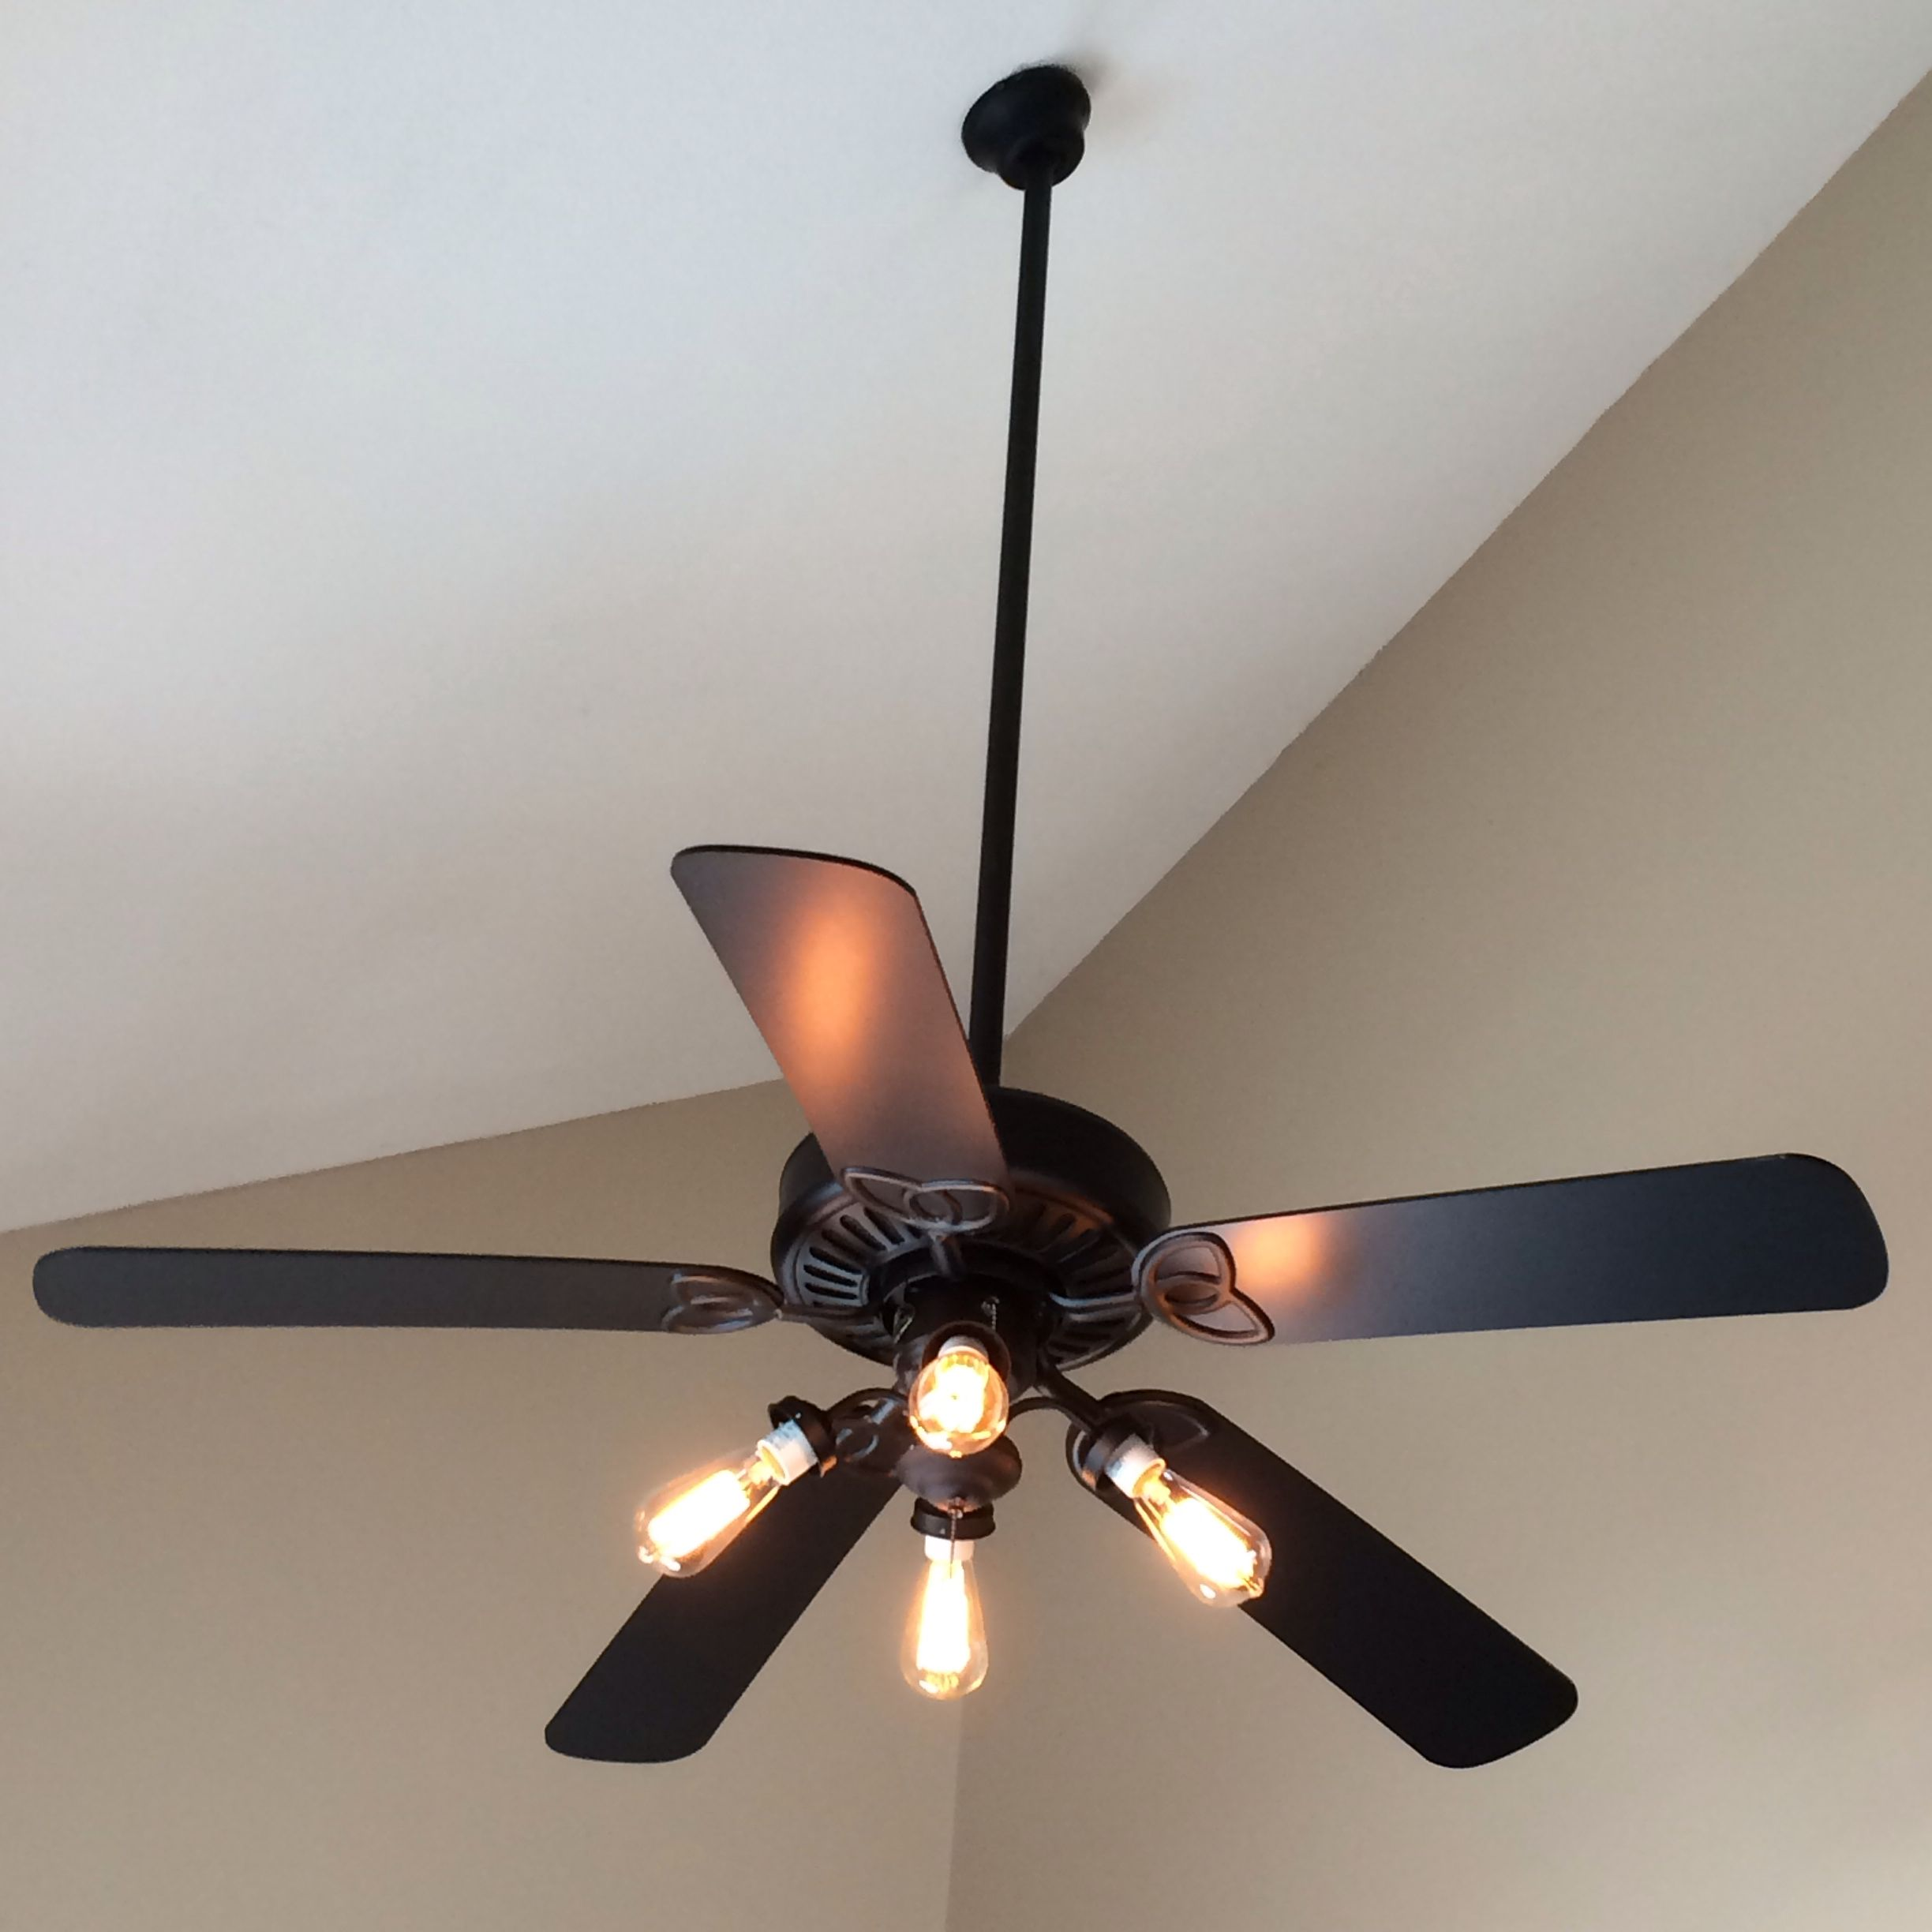 of zoom fabulous fan light awesome outdoor fans ceiling galvanized